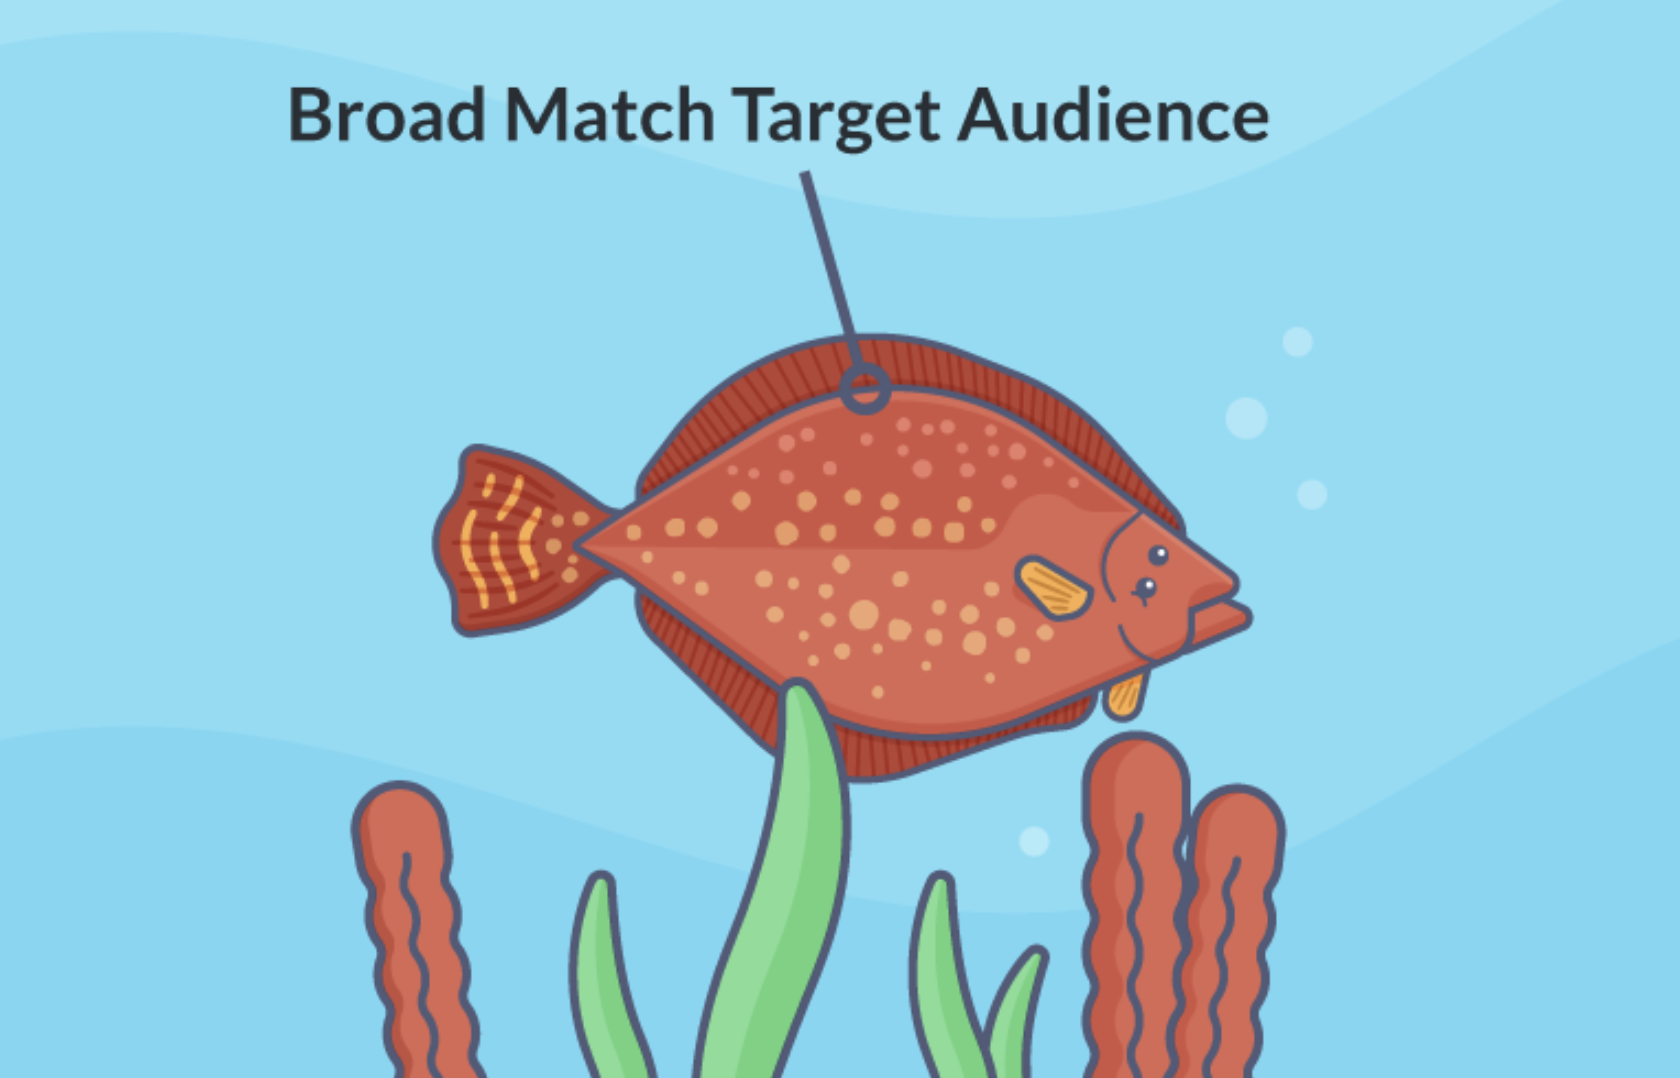 blog post image bottom feeding approach img8 - the broad match target audience bottom feeding flounder